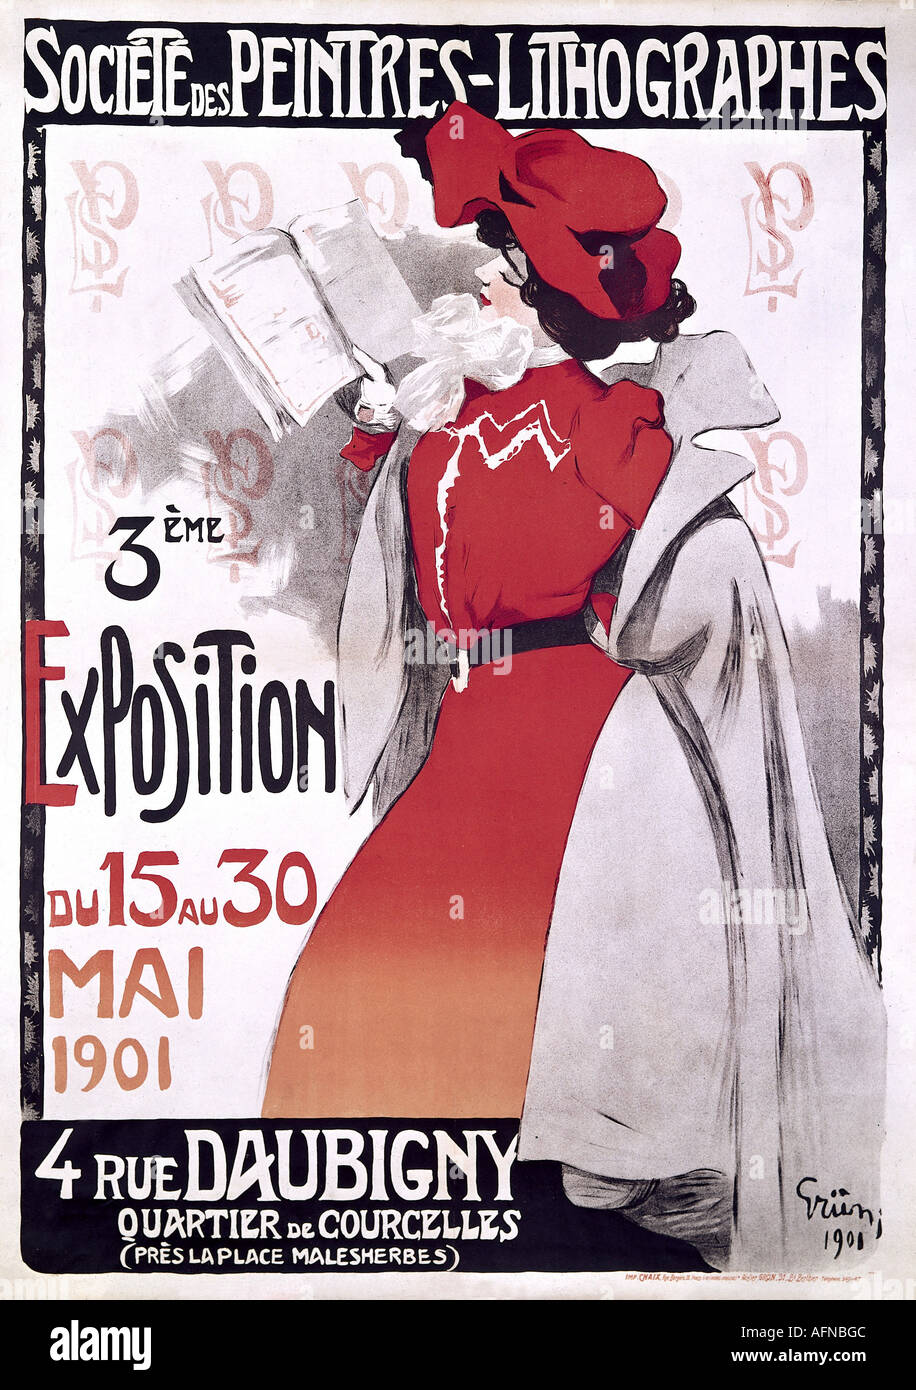 advertising, exhibitions, Societe des Peintres - Lithographes, Paris, 15.- 30.5.1901, poster by Jules Grün, 1900, historic, historical, France, art nouveau, Grun, Gruen, French, exhibition, 20th century, people, 1900s, Additional-Rights-Clearances-NA - Stock Image